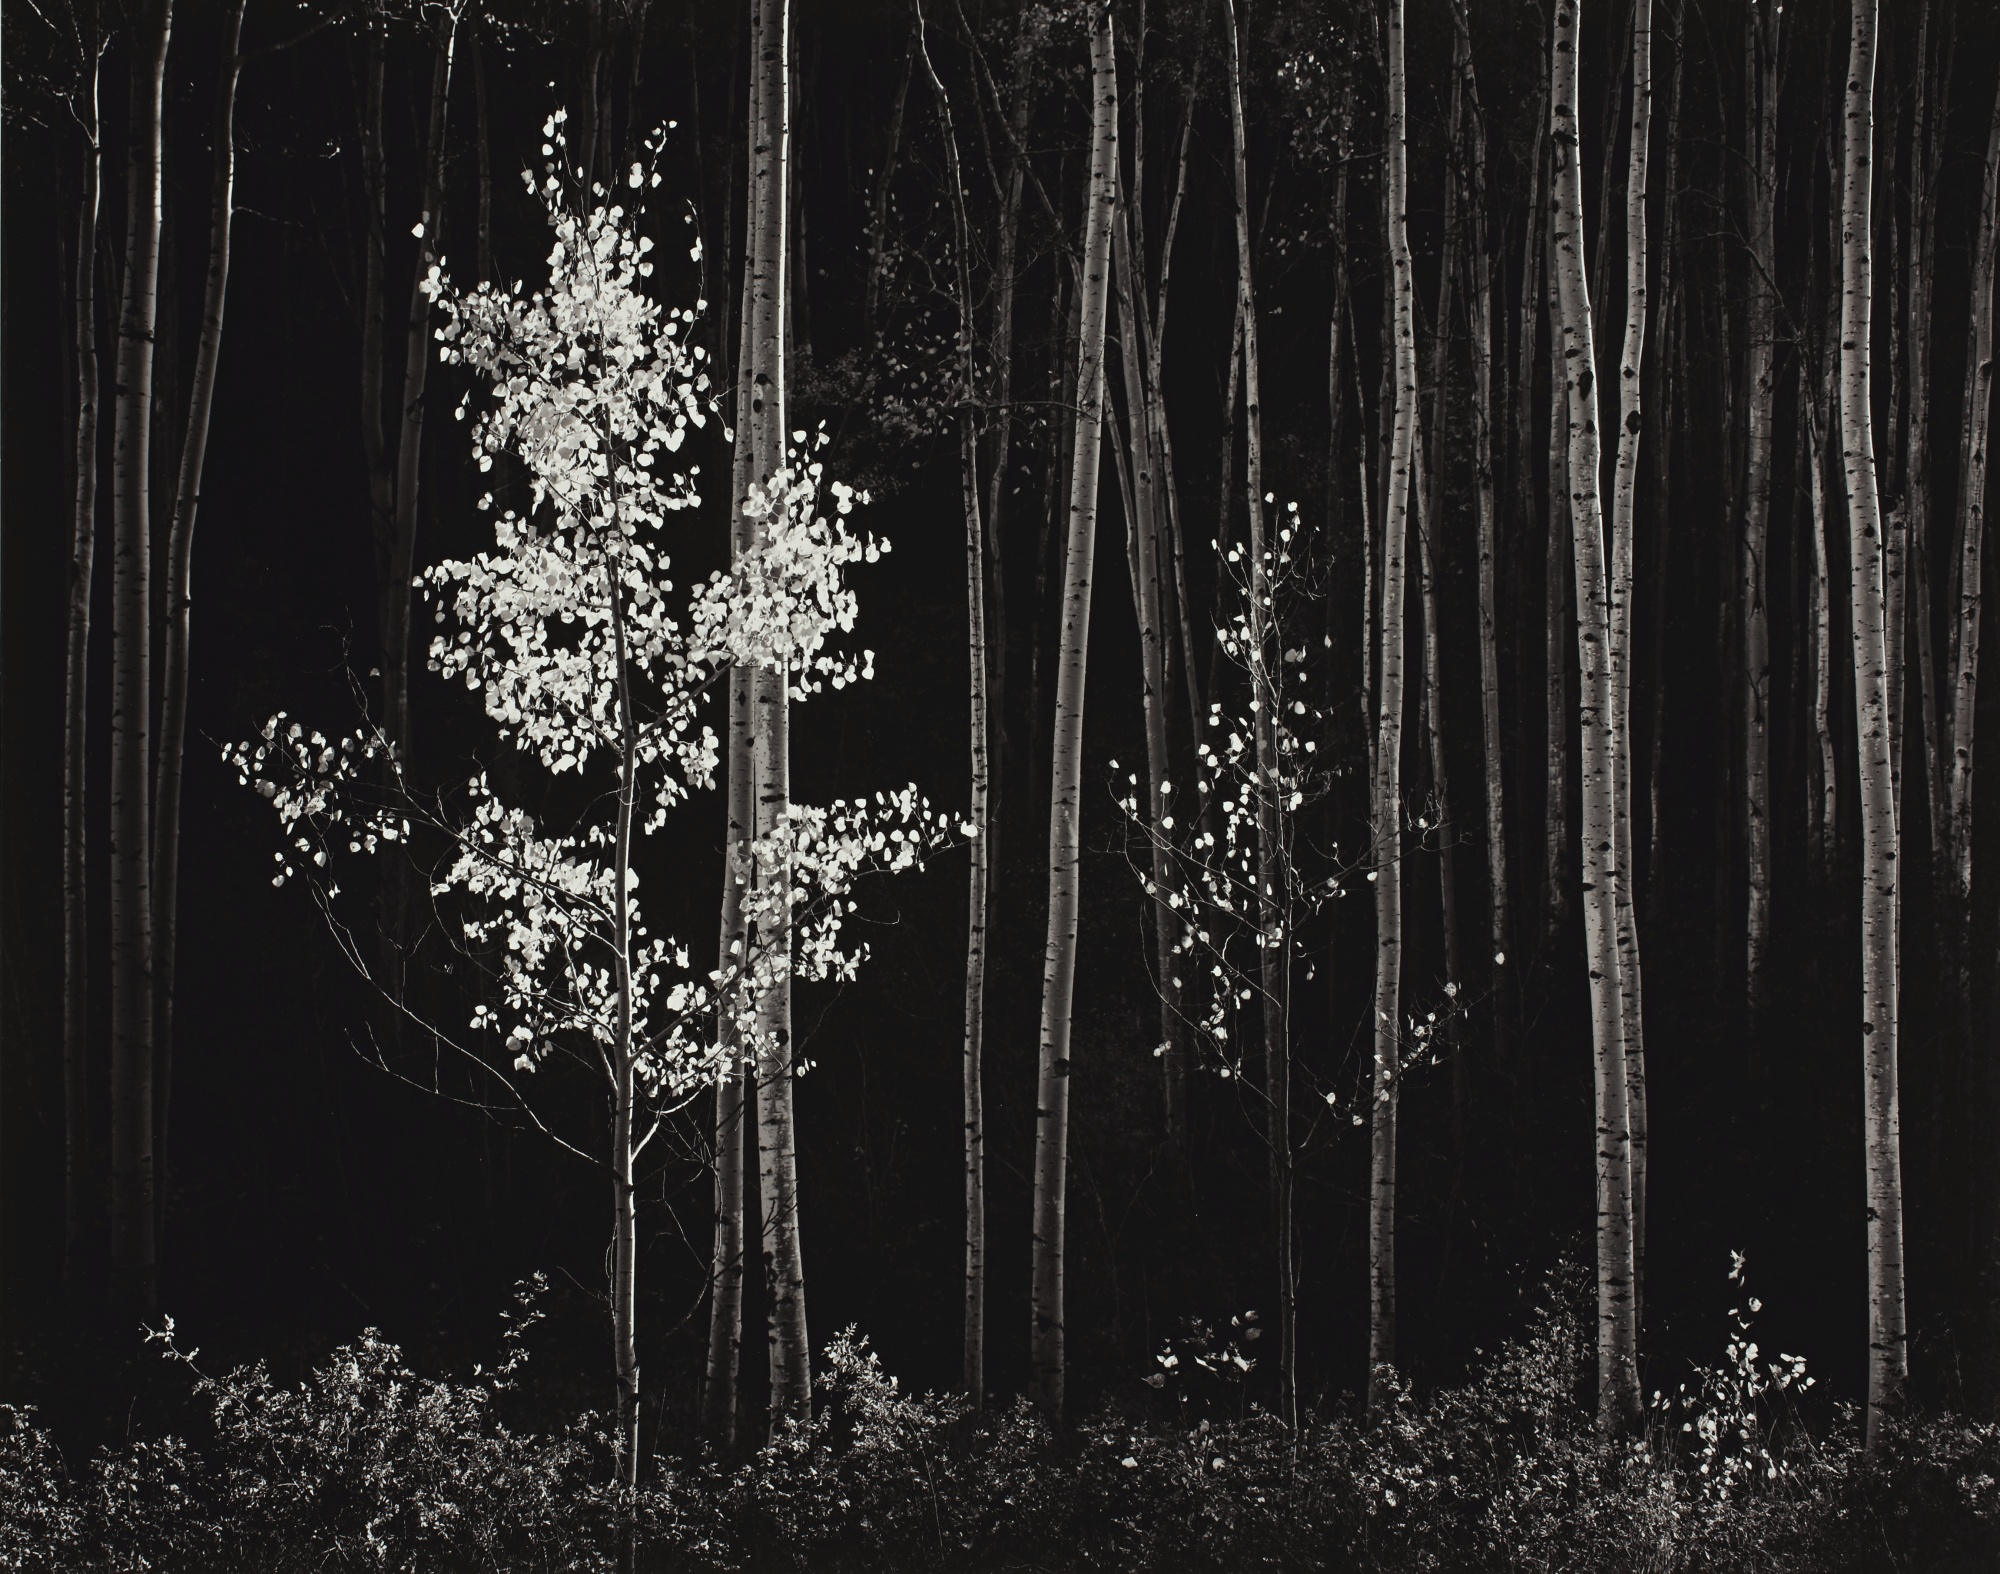 Ansel Adams-Aspens, Northern New Mexico-1958